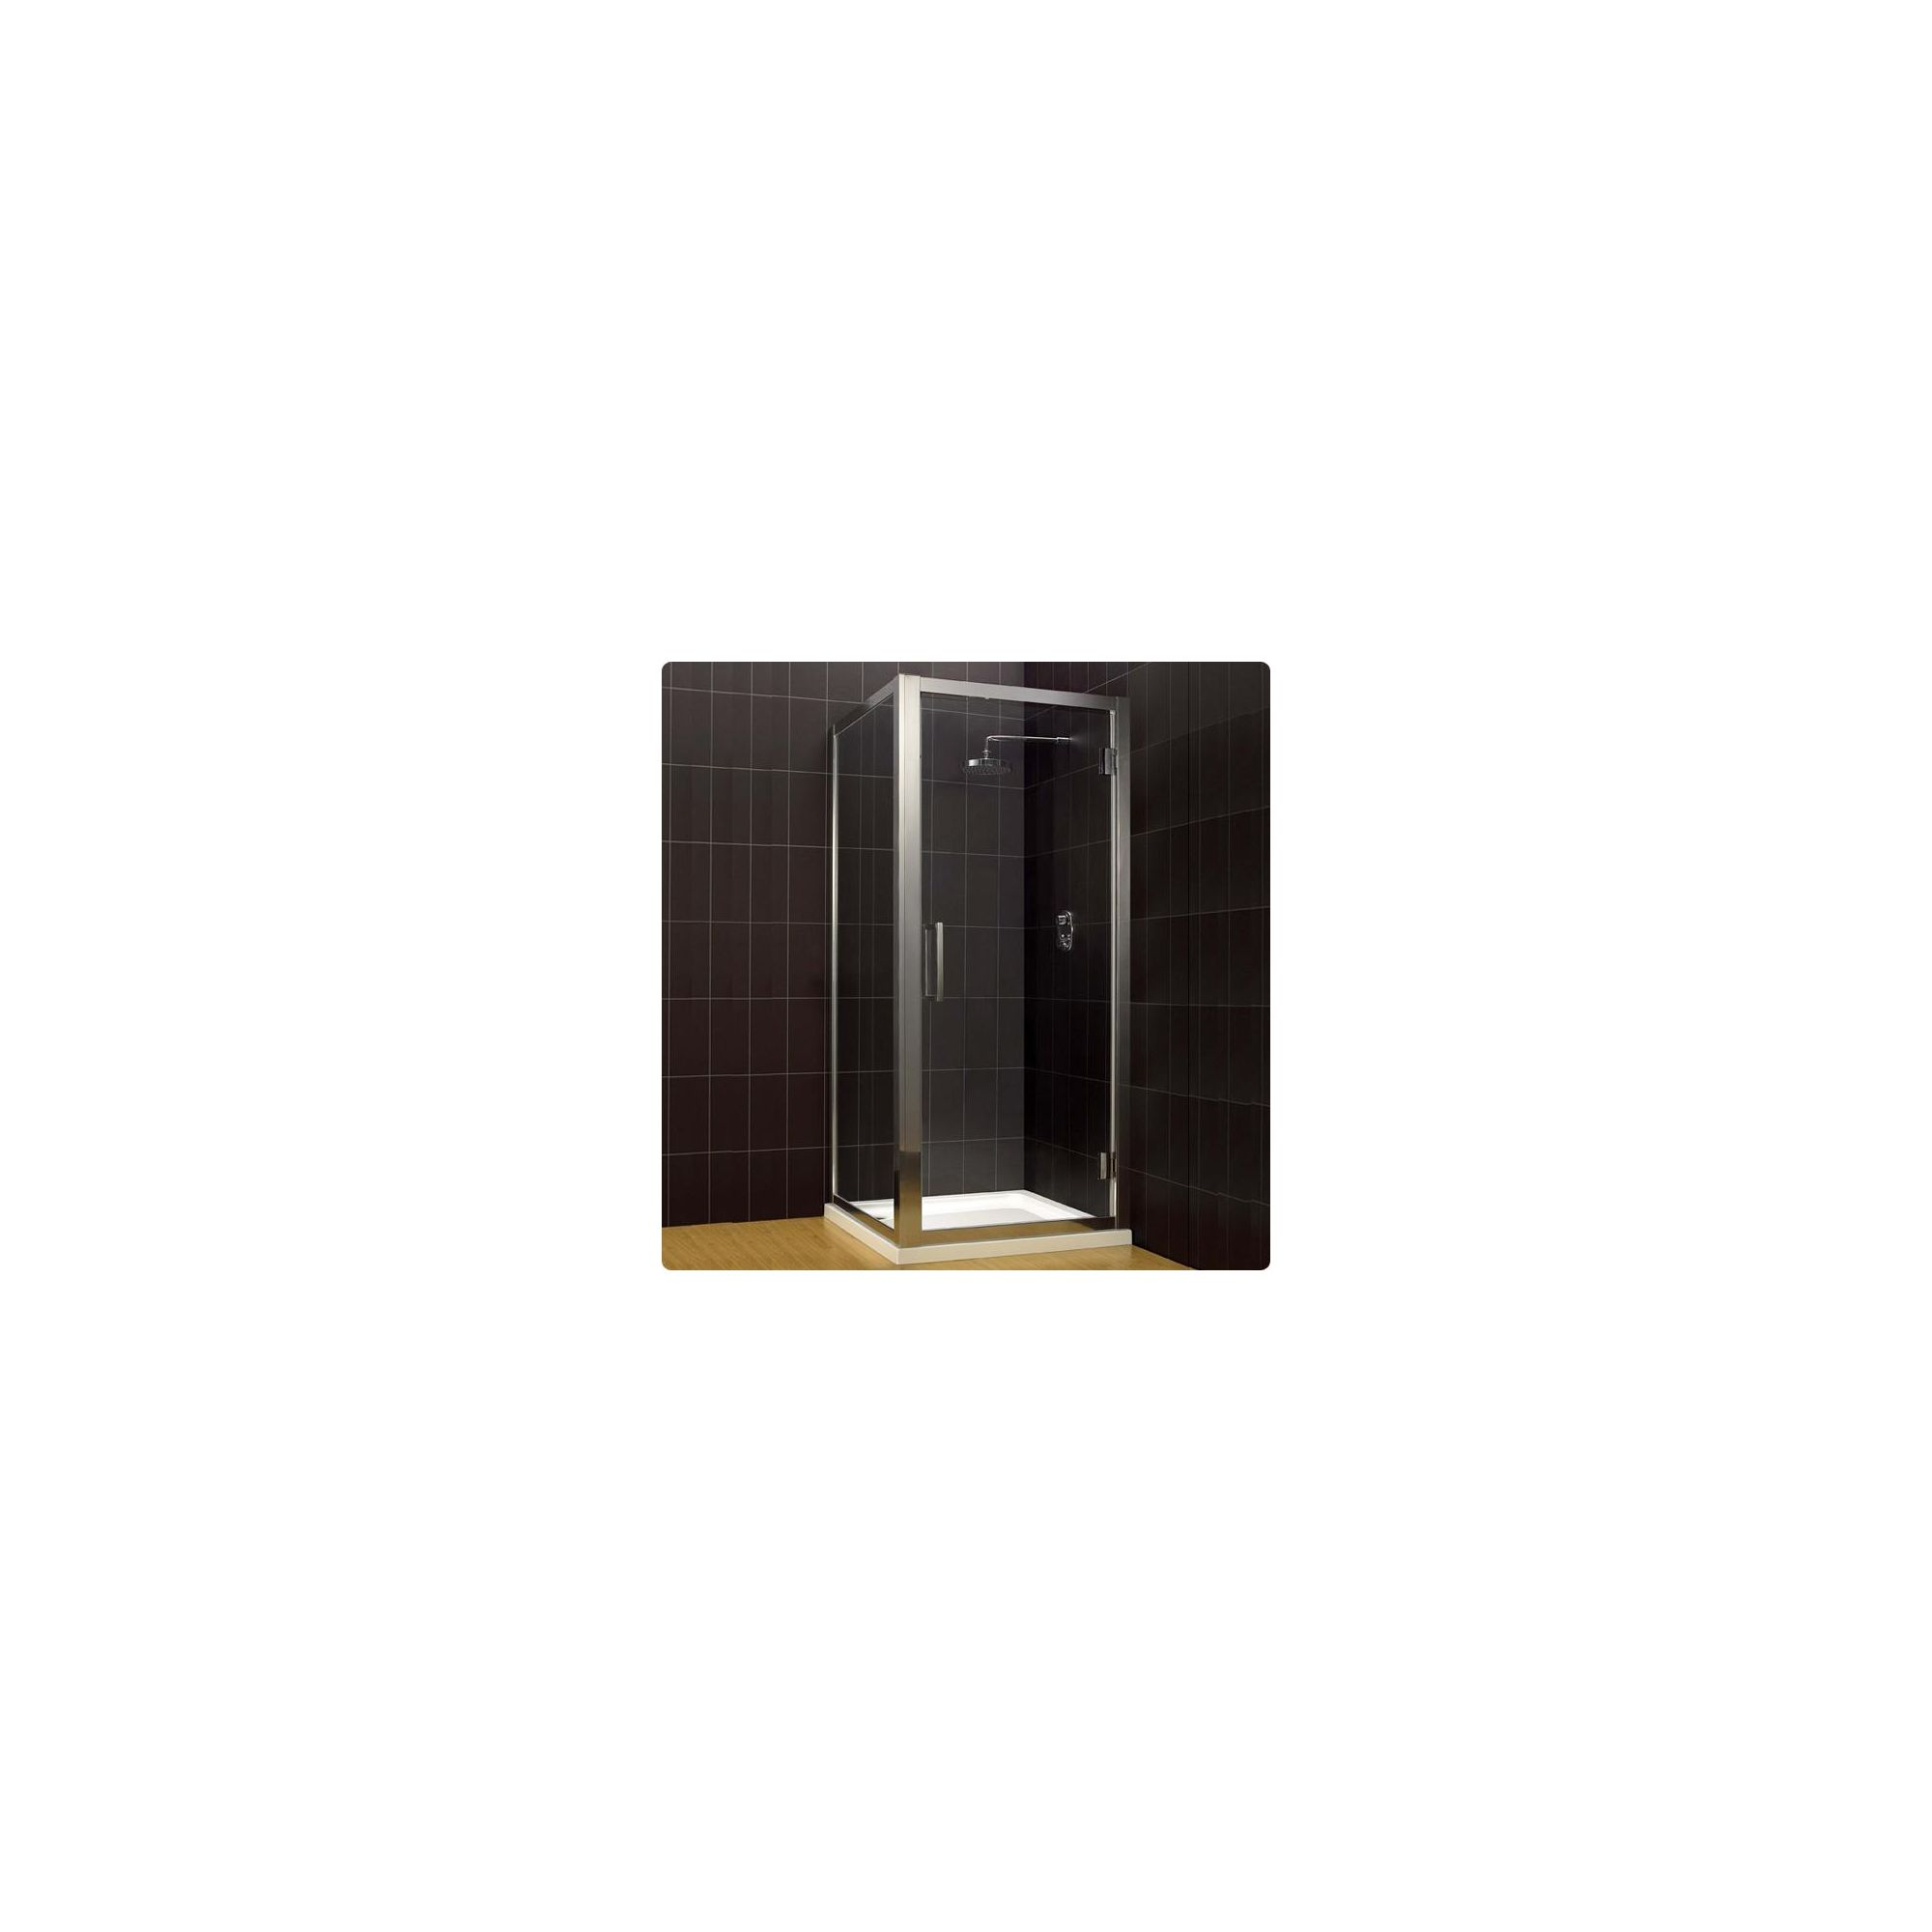 Duchy Supreme Silver Hinged Door Shower Enclosure with Towel Rail, 700mm x 700mm, Standard Tray, 8mm Glass at Tesco Direct